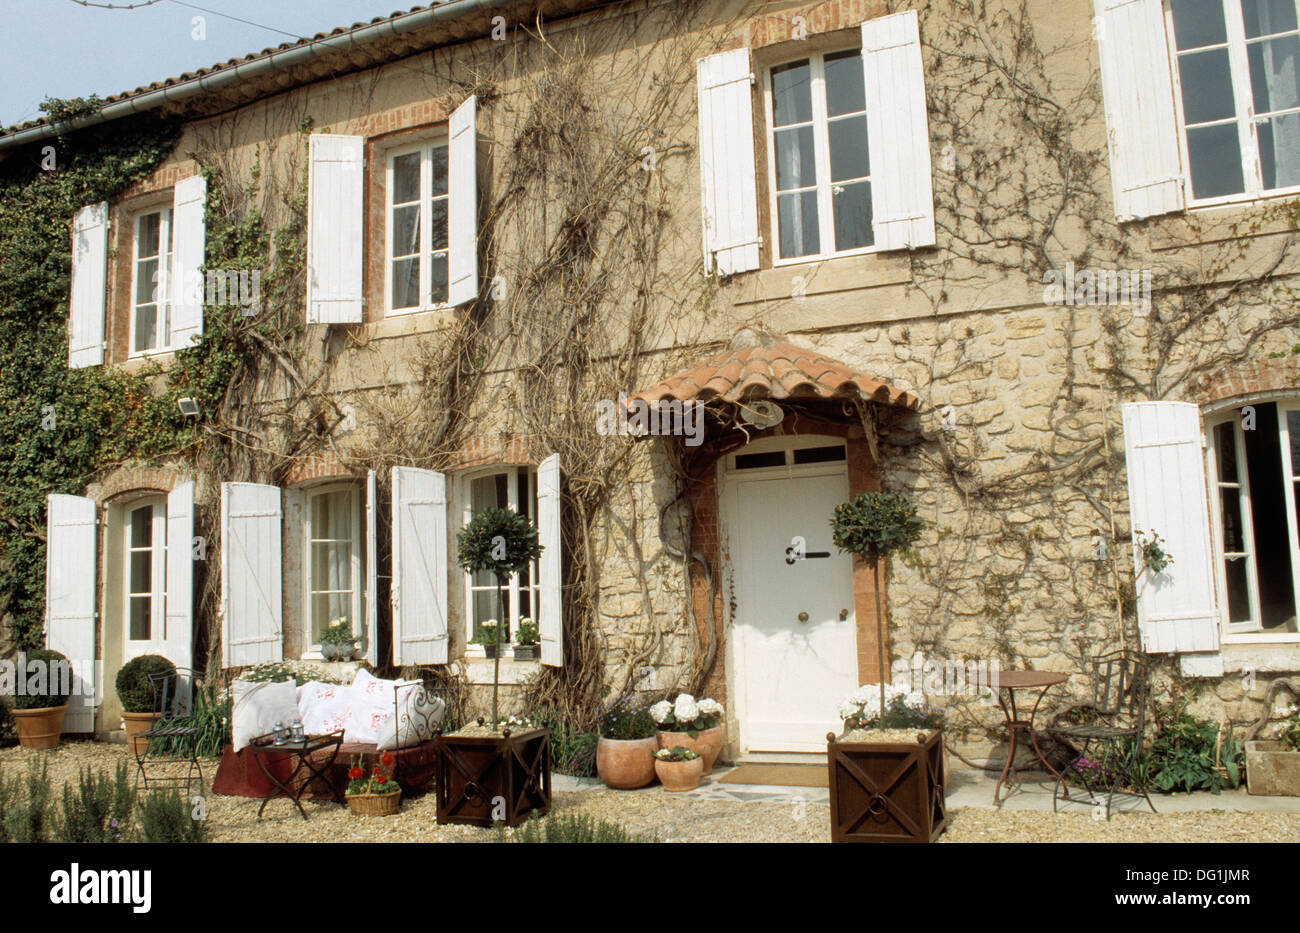 Traditional French Country House With White Shutters On The Windows